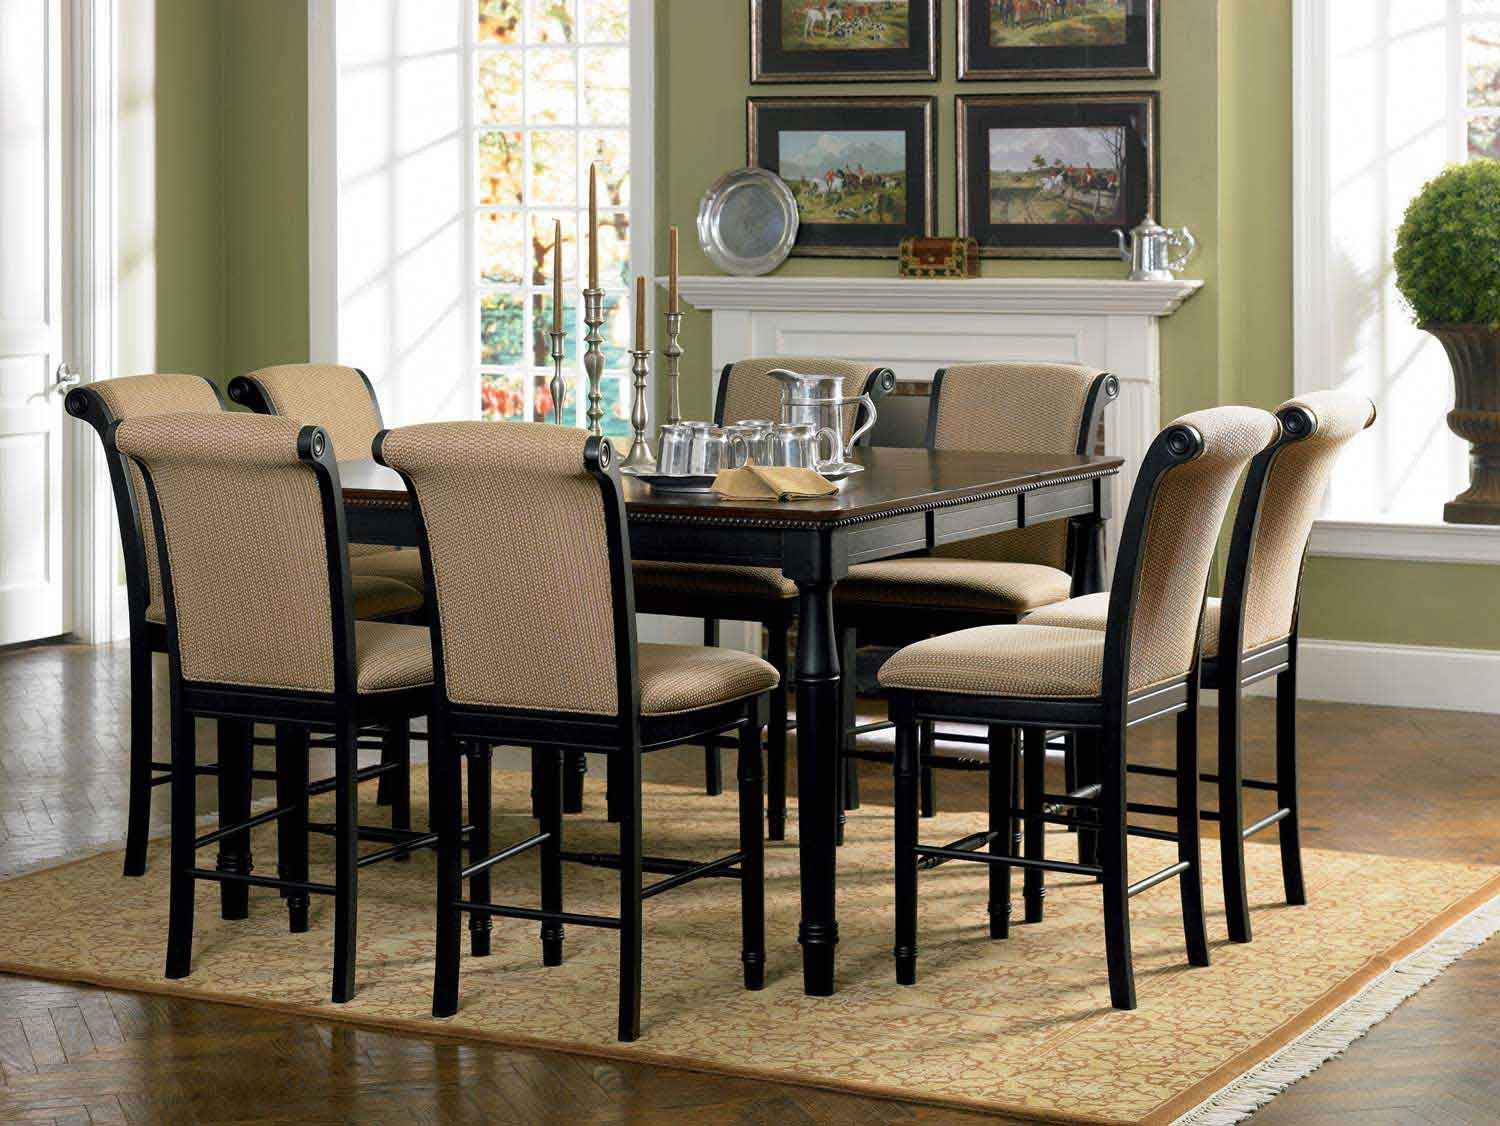 Coaster Cabrillo Counter Height Dining Set - Black-Amaretto 101828 ...